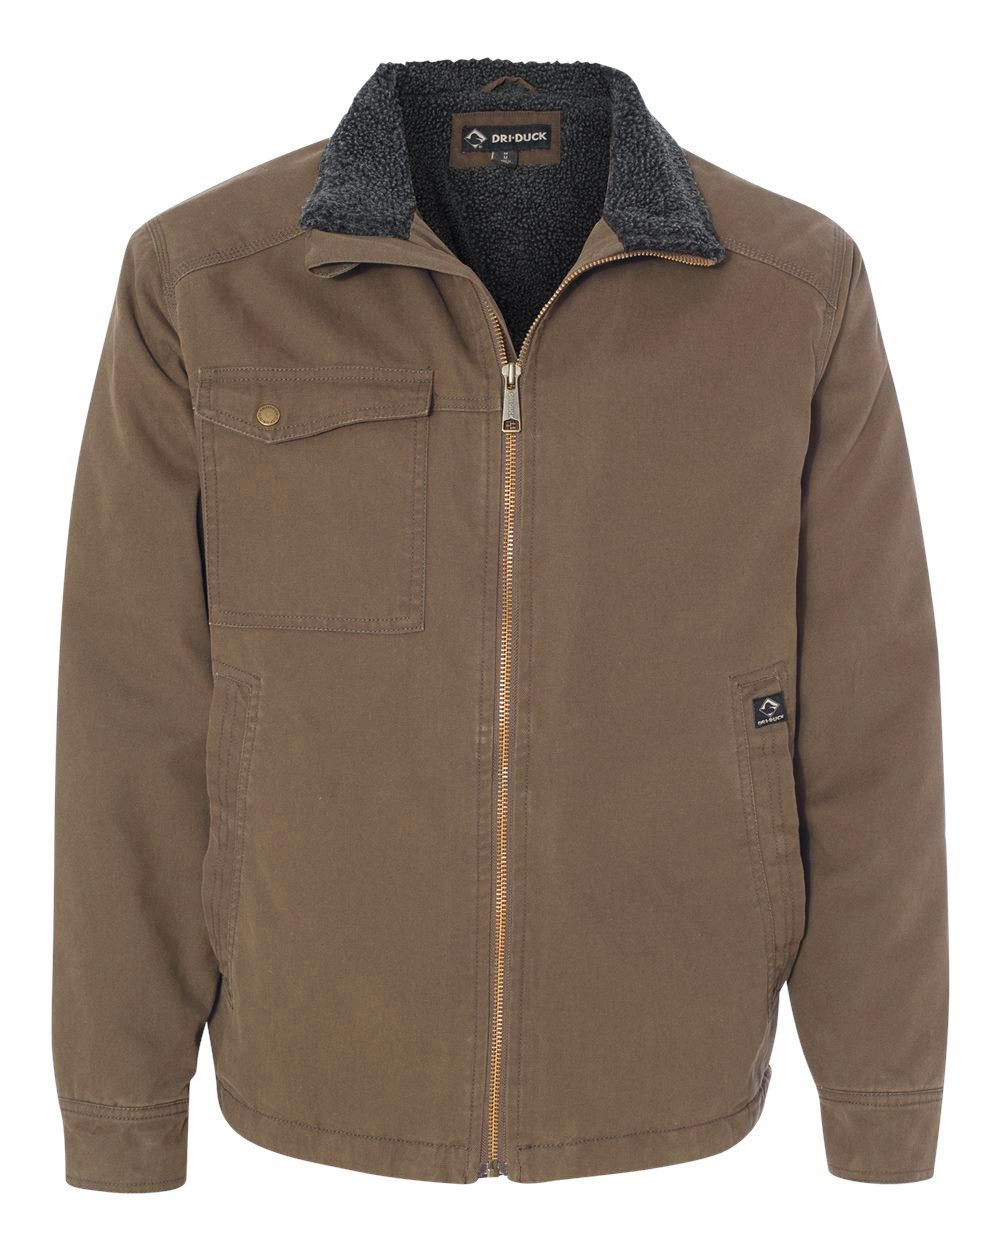 Mens Dri Duck Endeavor Jacket with Sherpa Lining